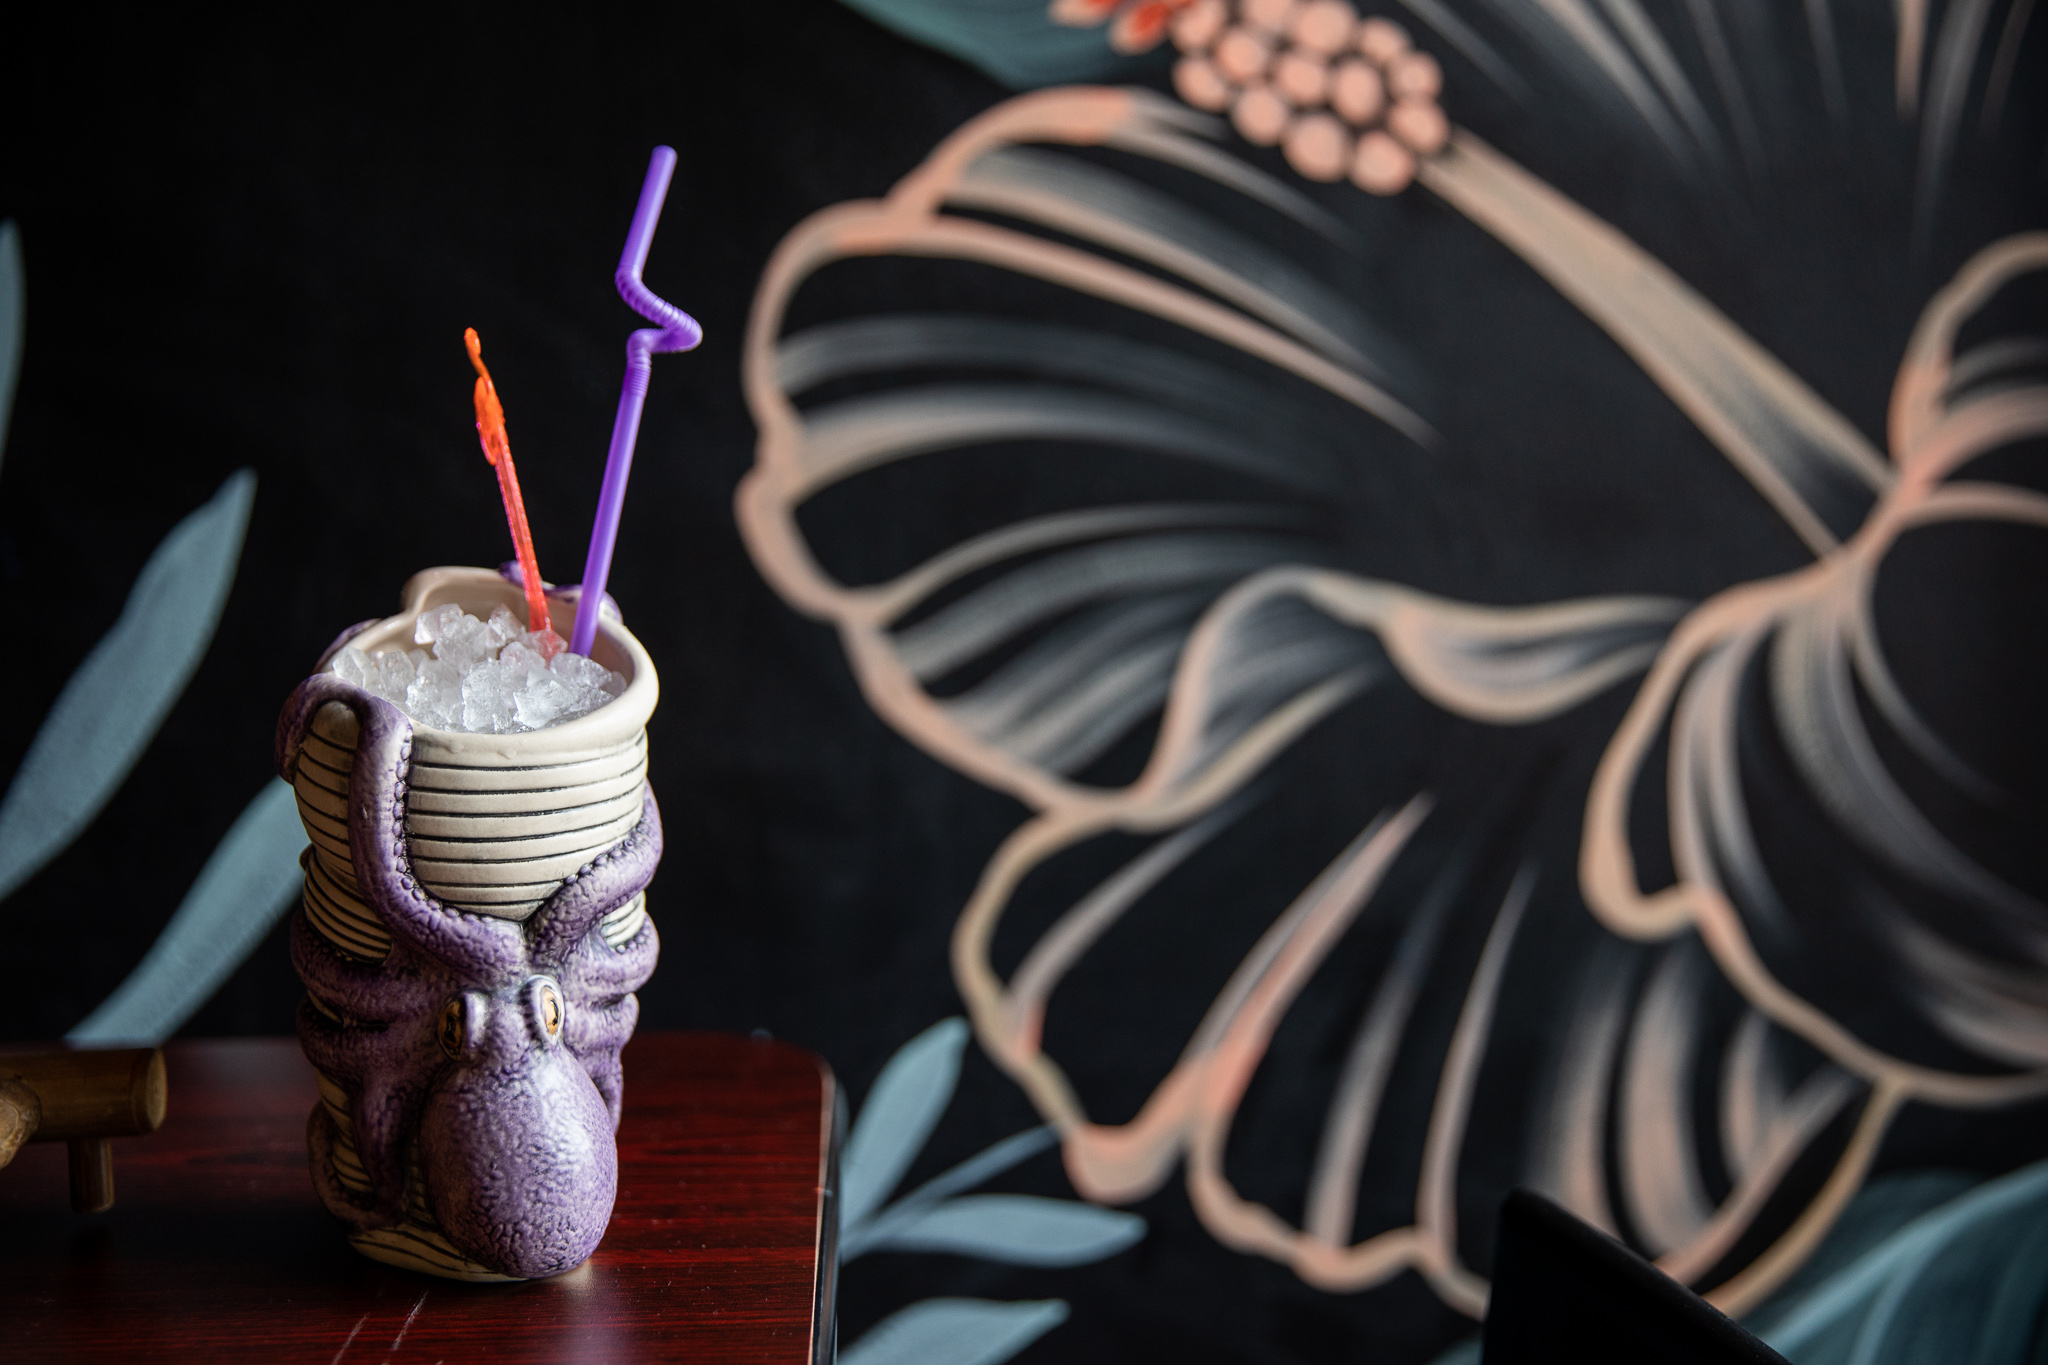 A kraken mug with colorful straws stands in front of a floral mural.